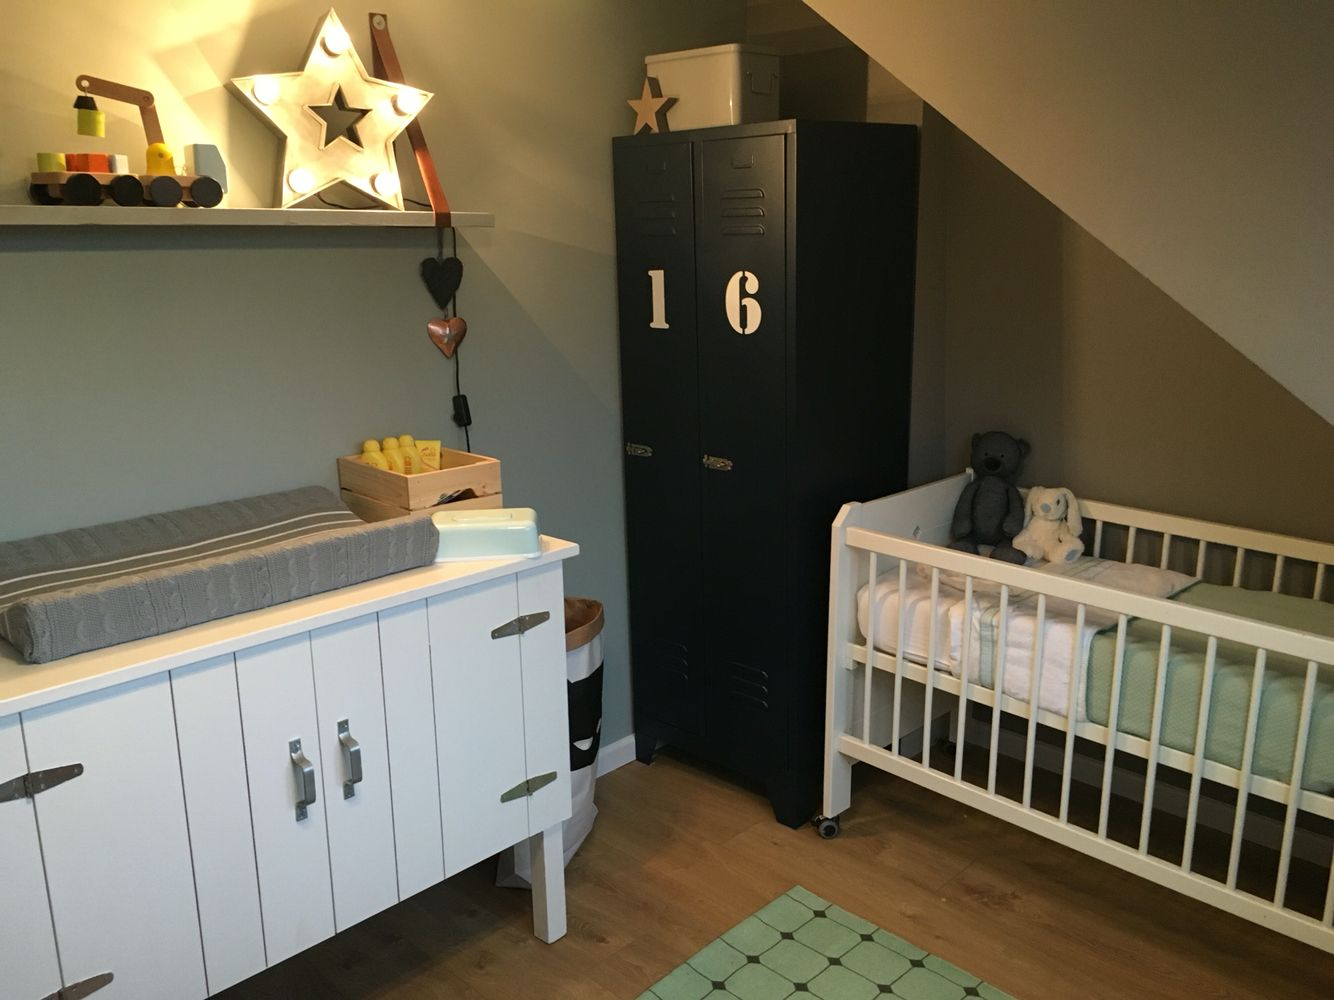 Early Dew Slaapkamer : Early dew behang. finest babykamer inspiratie lapin and me imps and